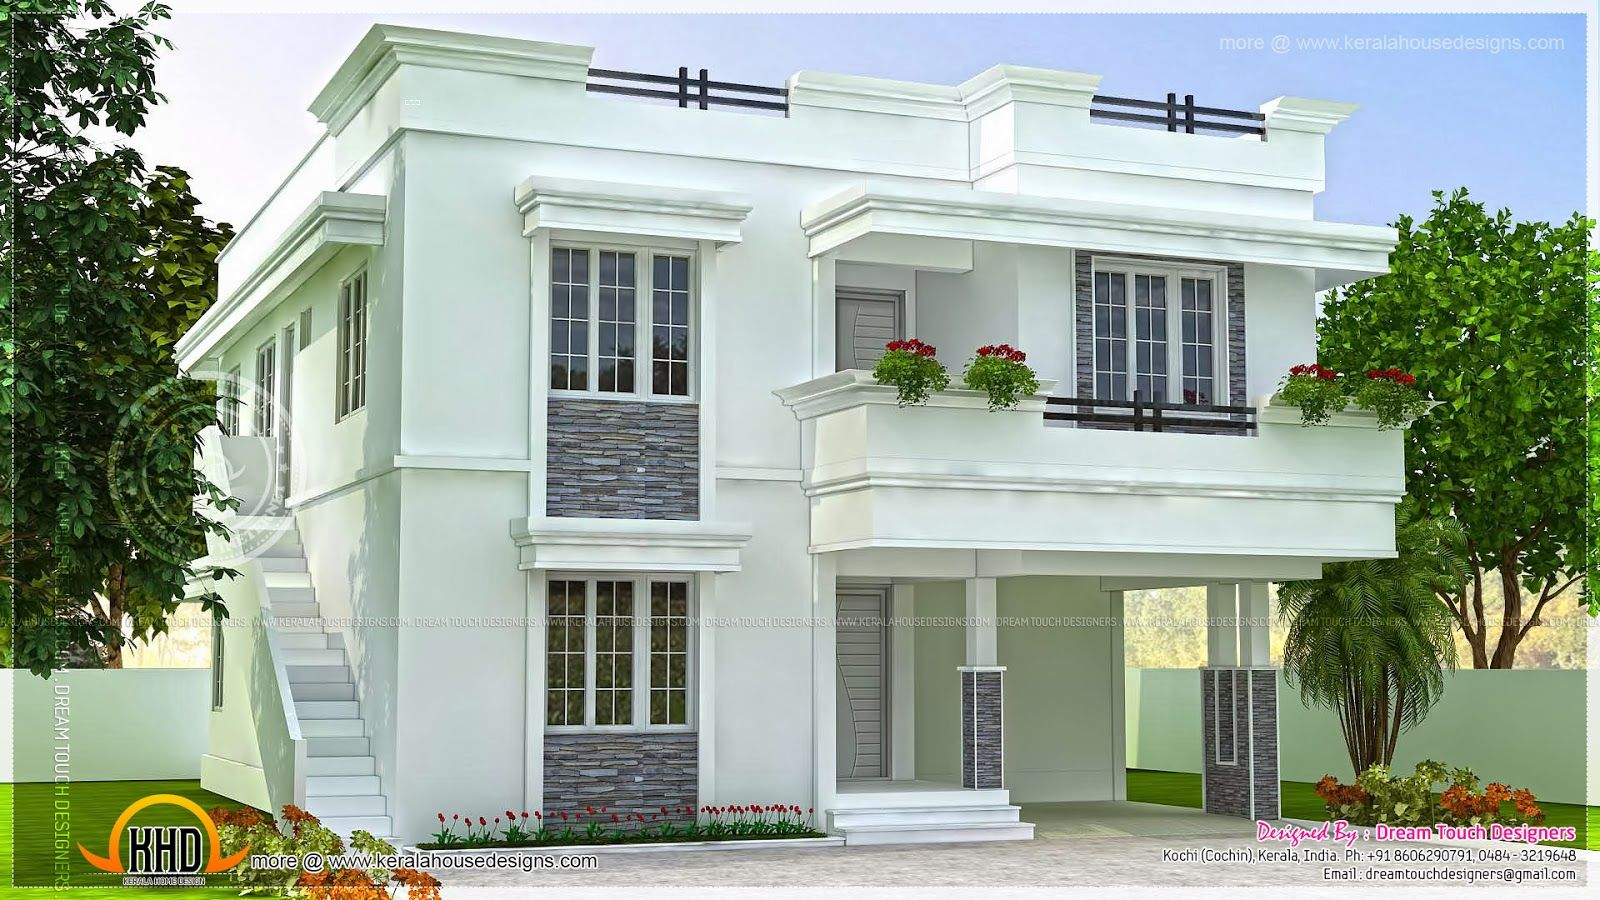 Modern beautiful home modern beautiful home design indian for Indian home design photos exterior